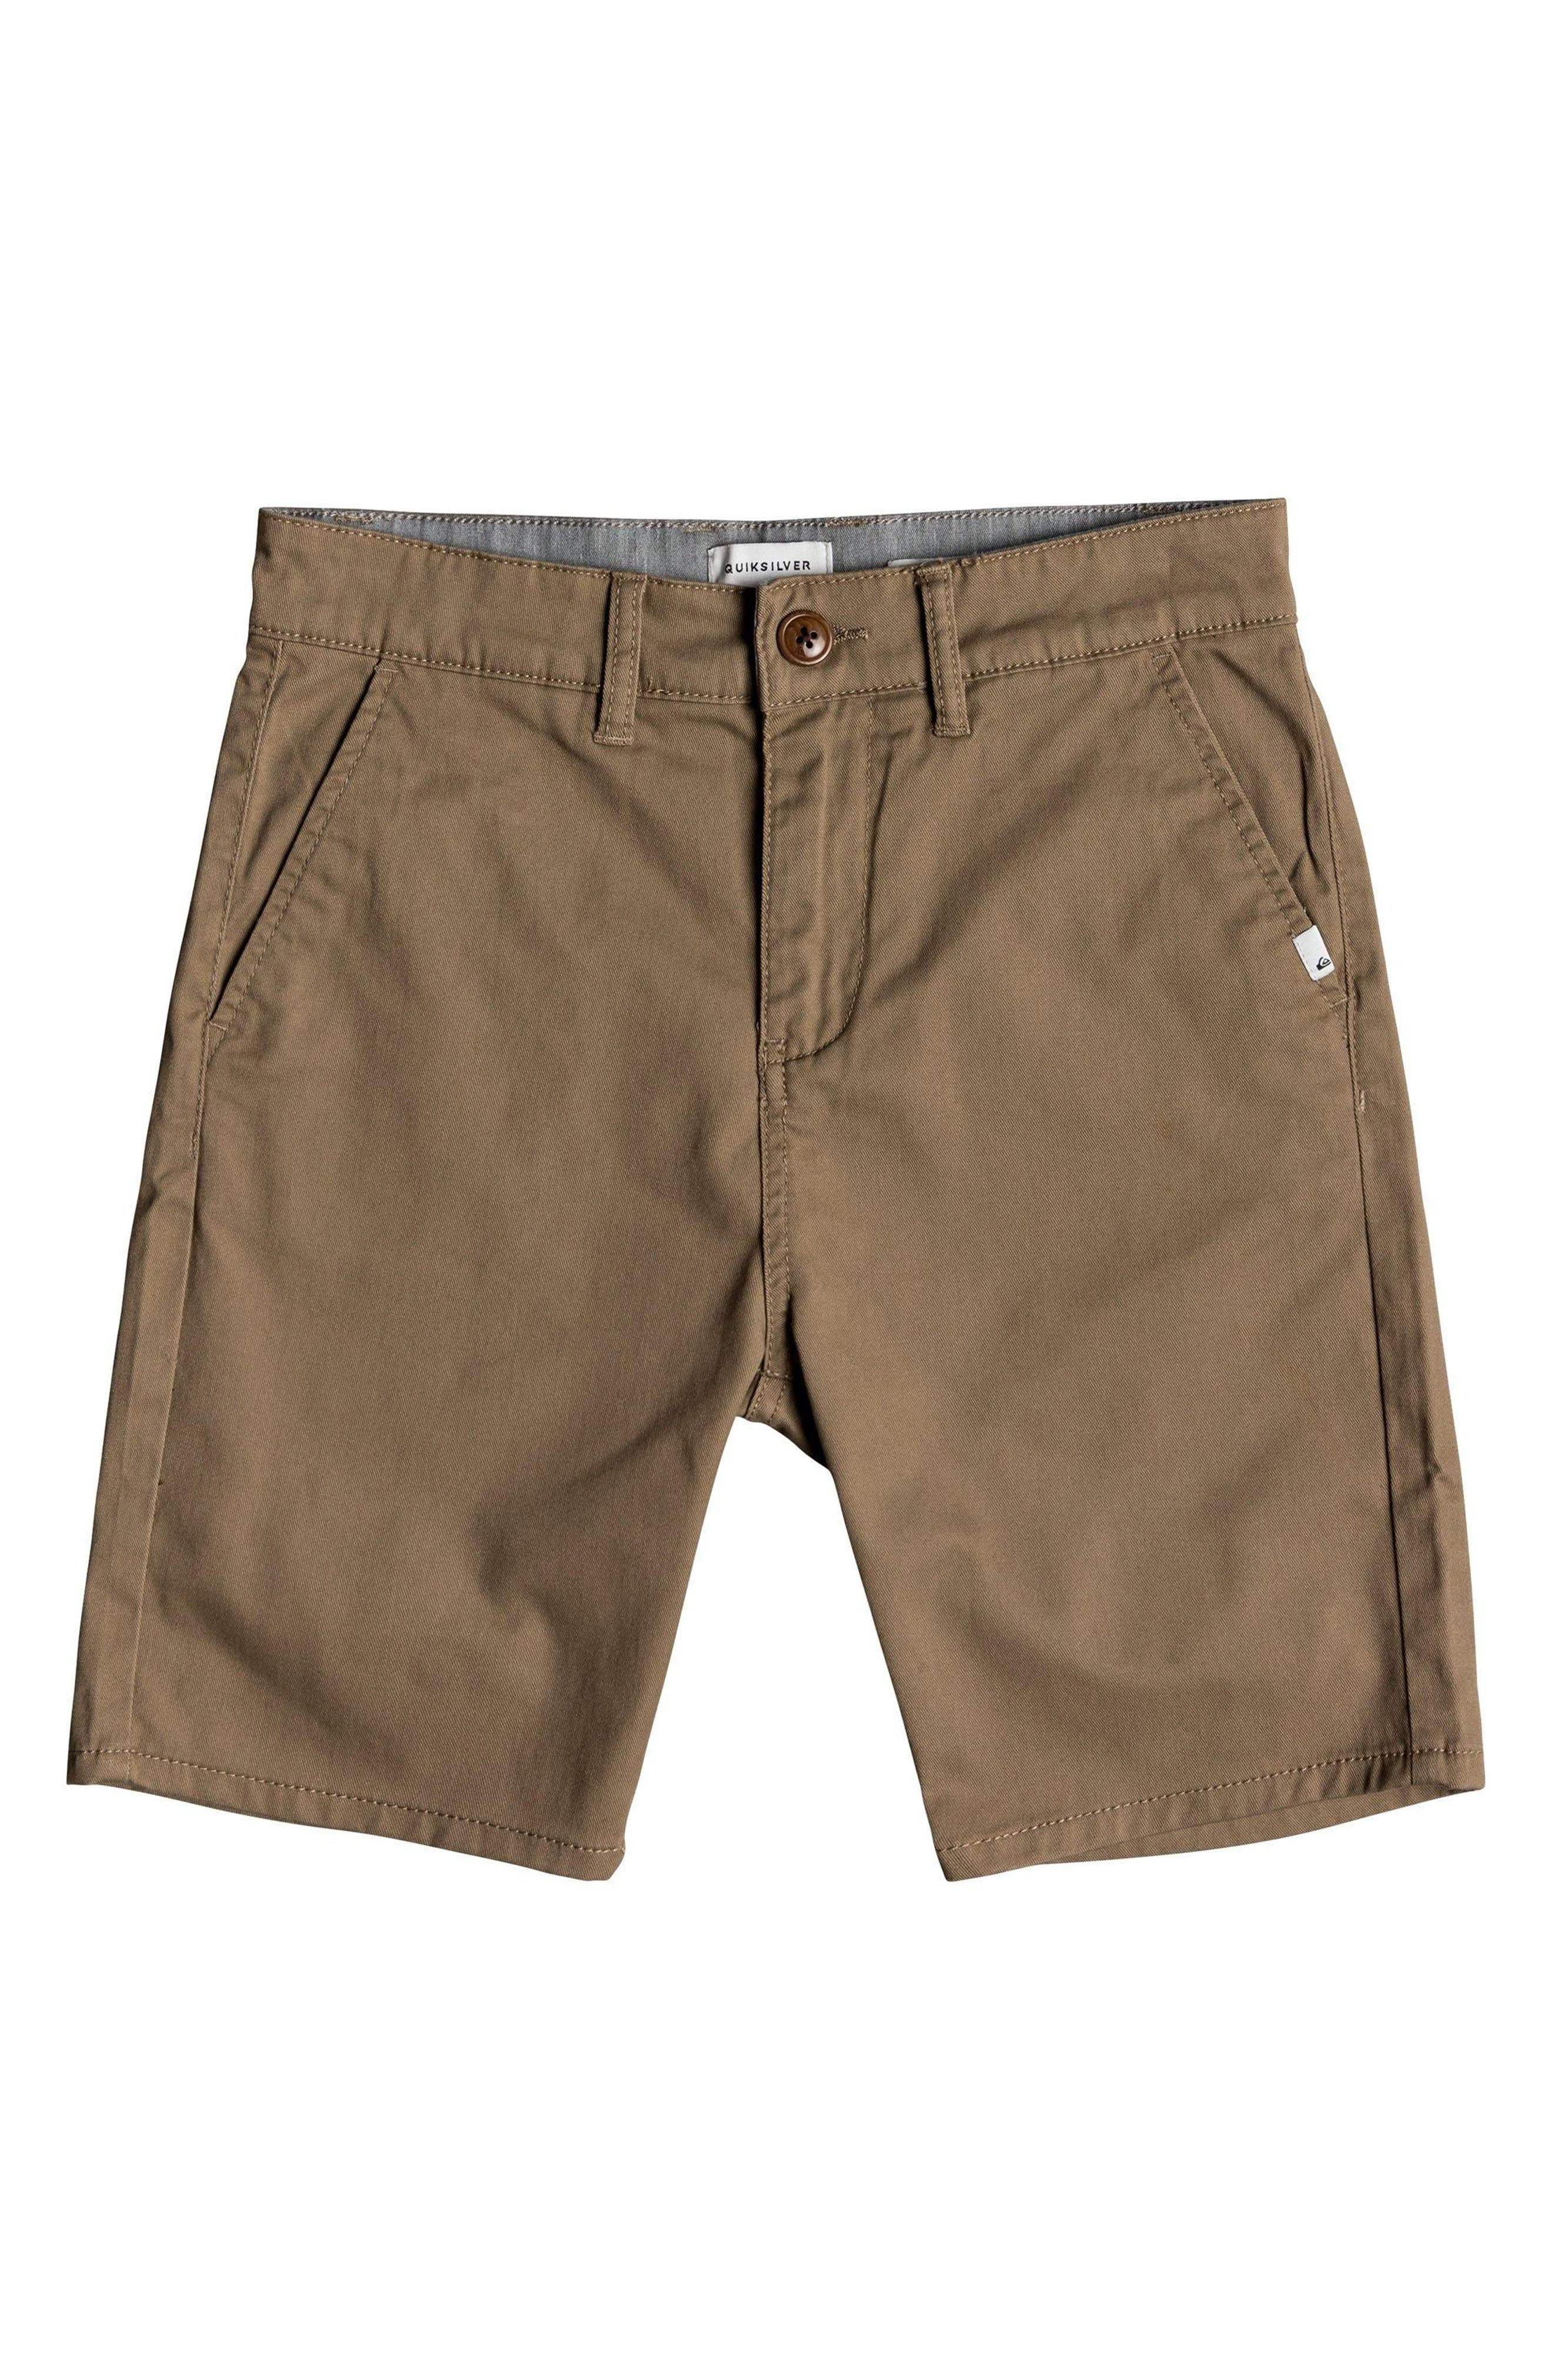 Everyday Union Stretch Shorts,                             Main thumbnail 1, color,                             ELMWOOD